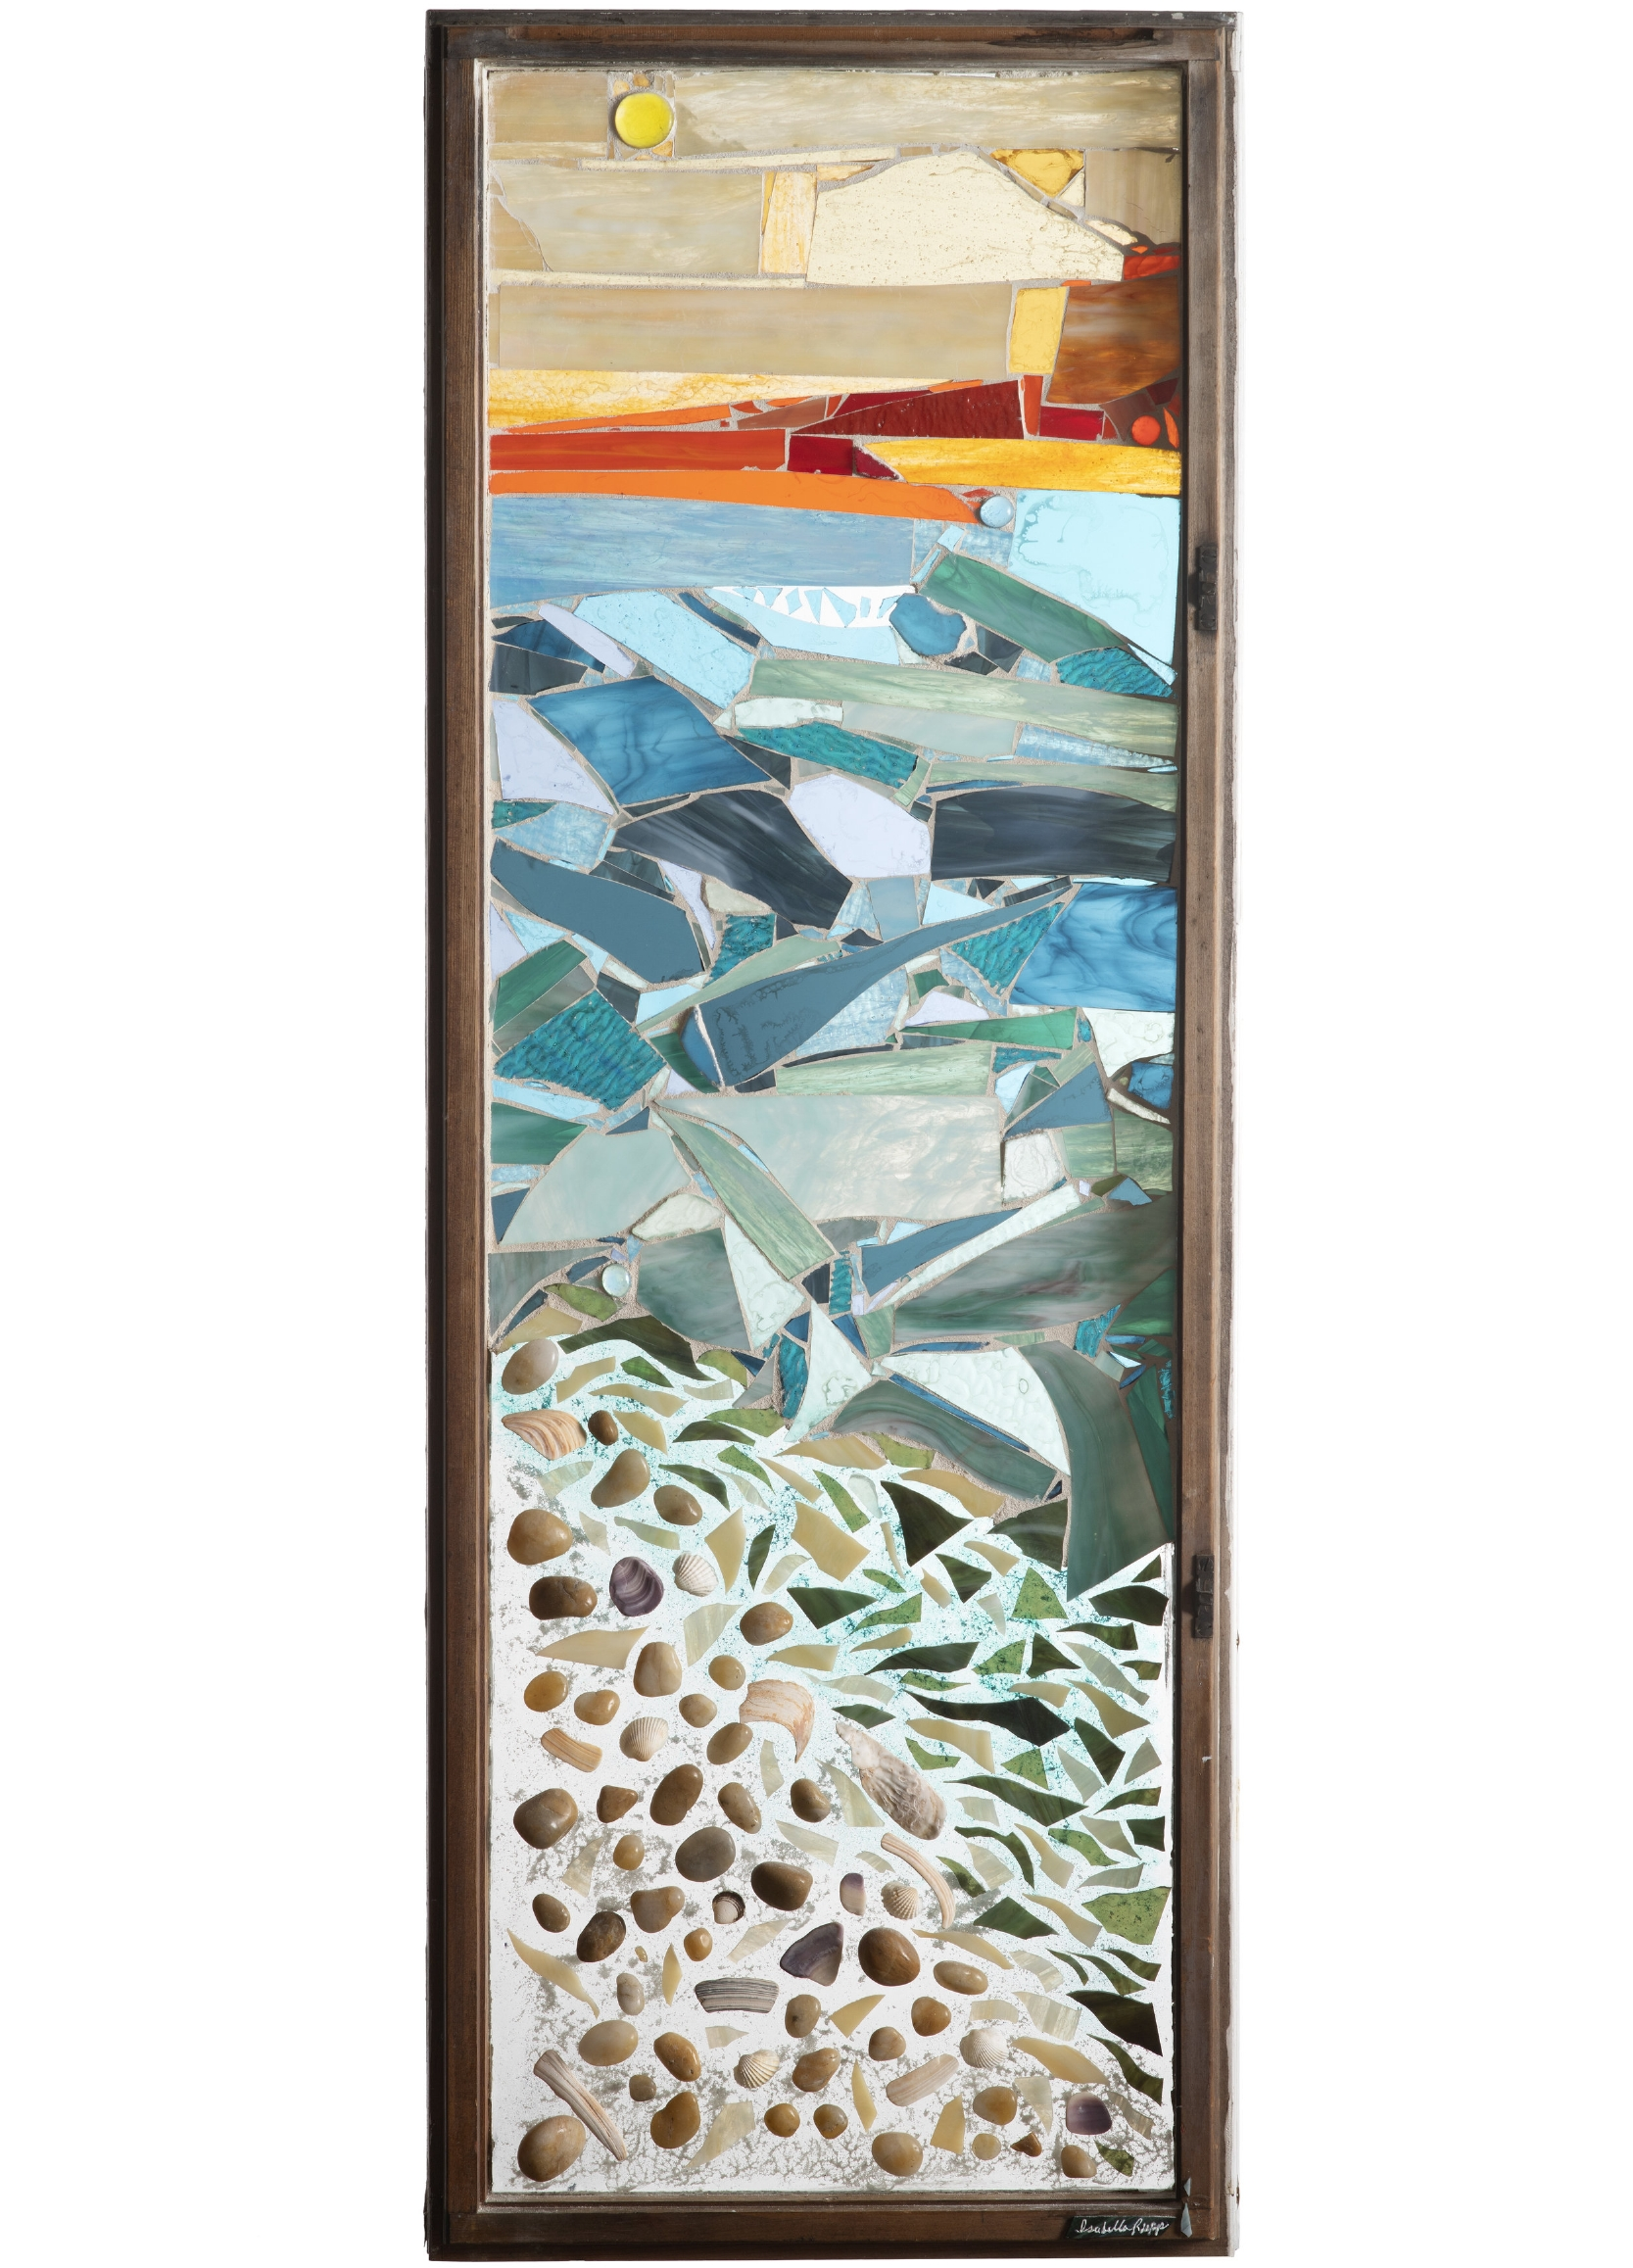 Beachcomber, 2003. Glass, paint, shells, stones, 51 x 19 in.   Bay window from Northport, NY